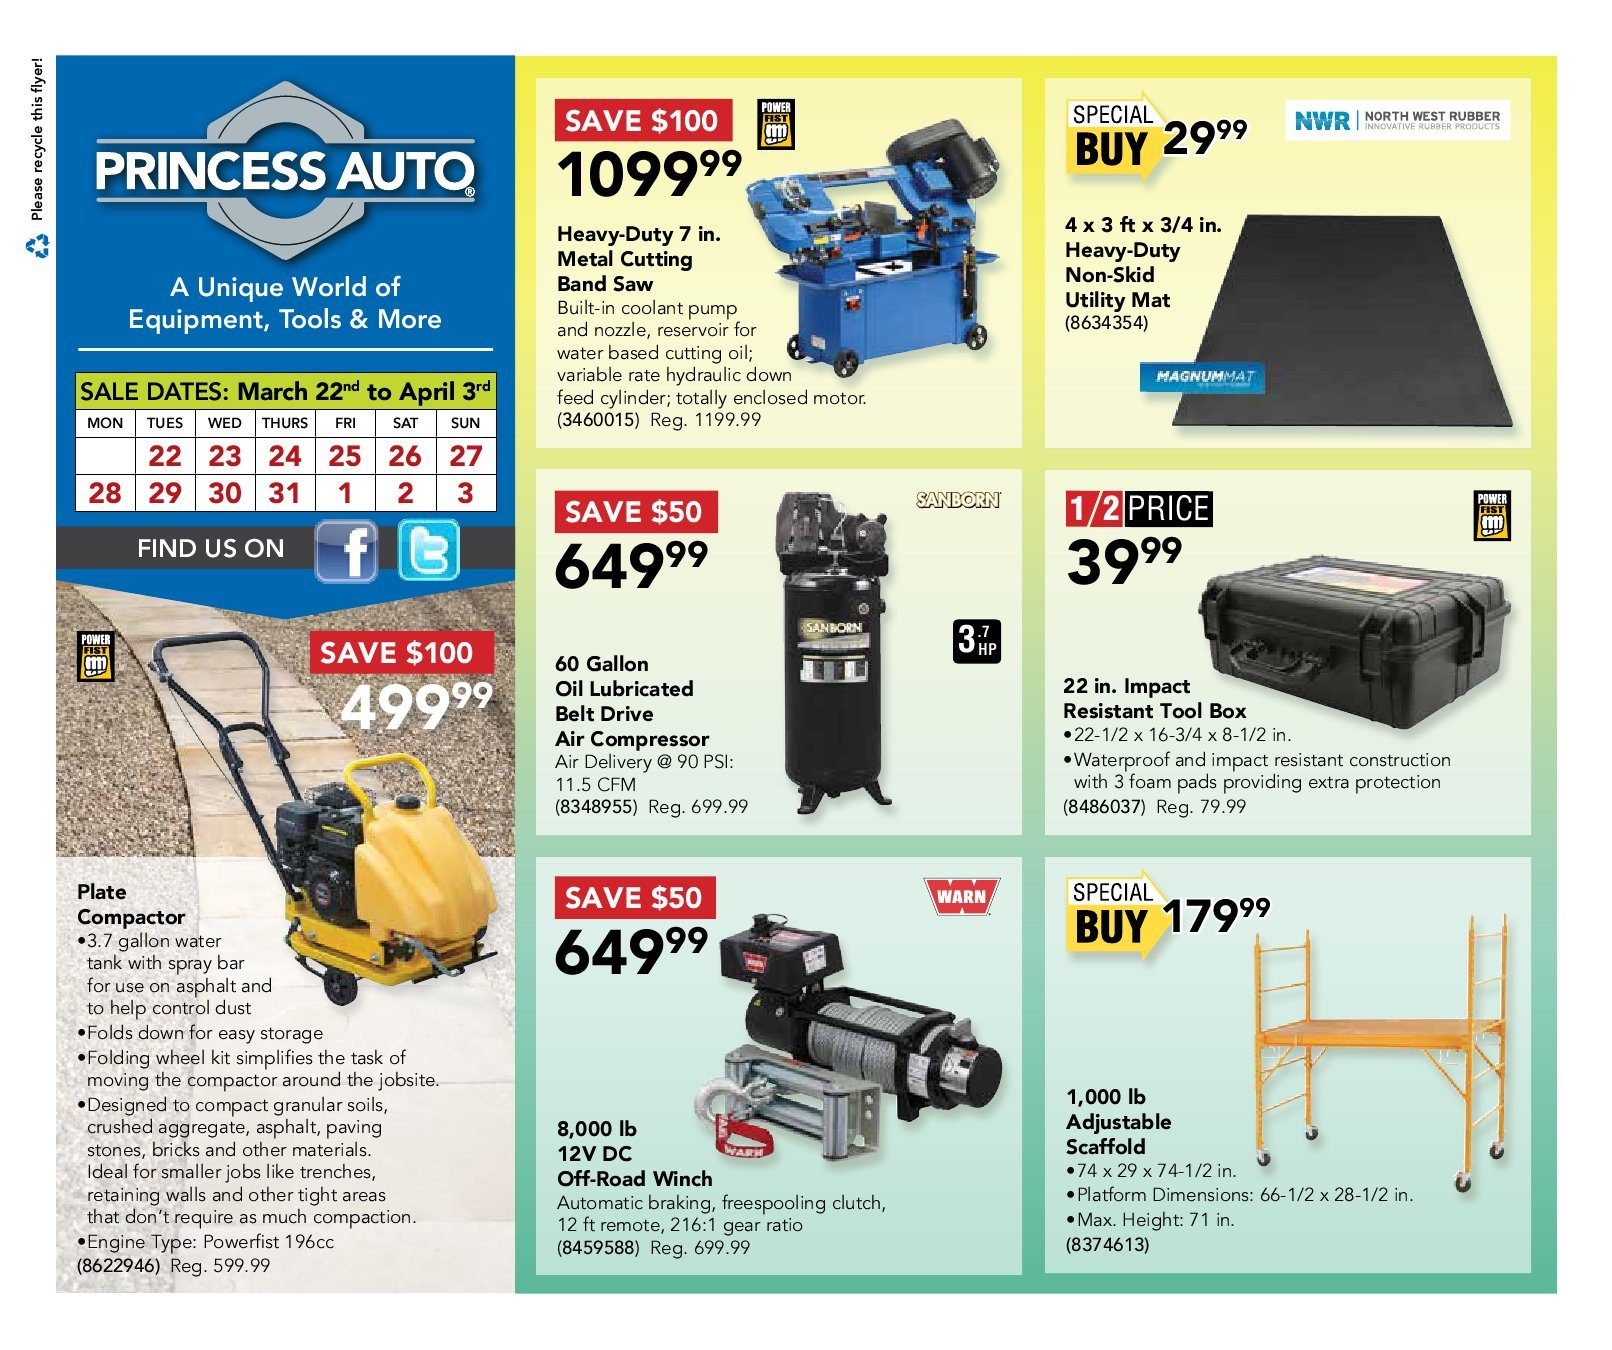 Princess Auto Weekly Flyer Gear Up for Spring Mar 22 – Apr 3